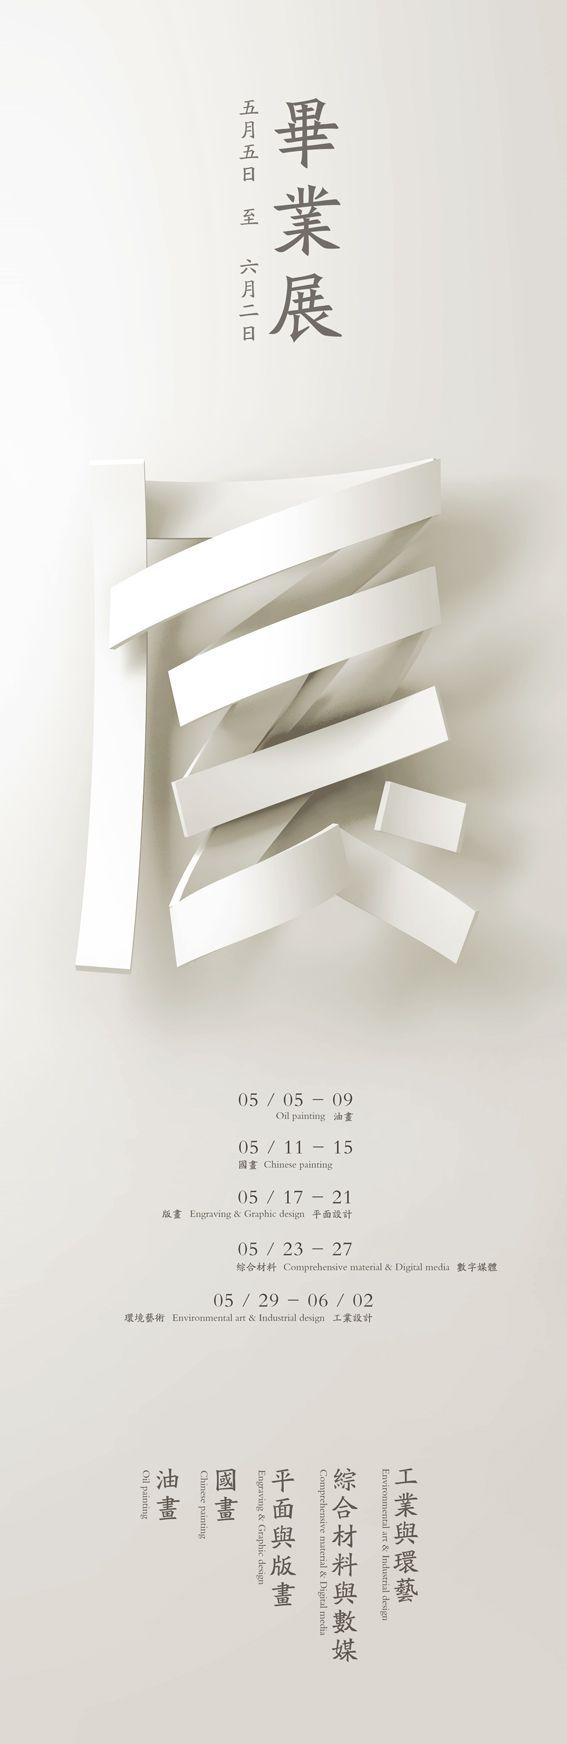 Chinese Graduation Poster Design inspiration ad posters